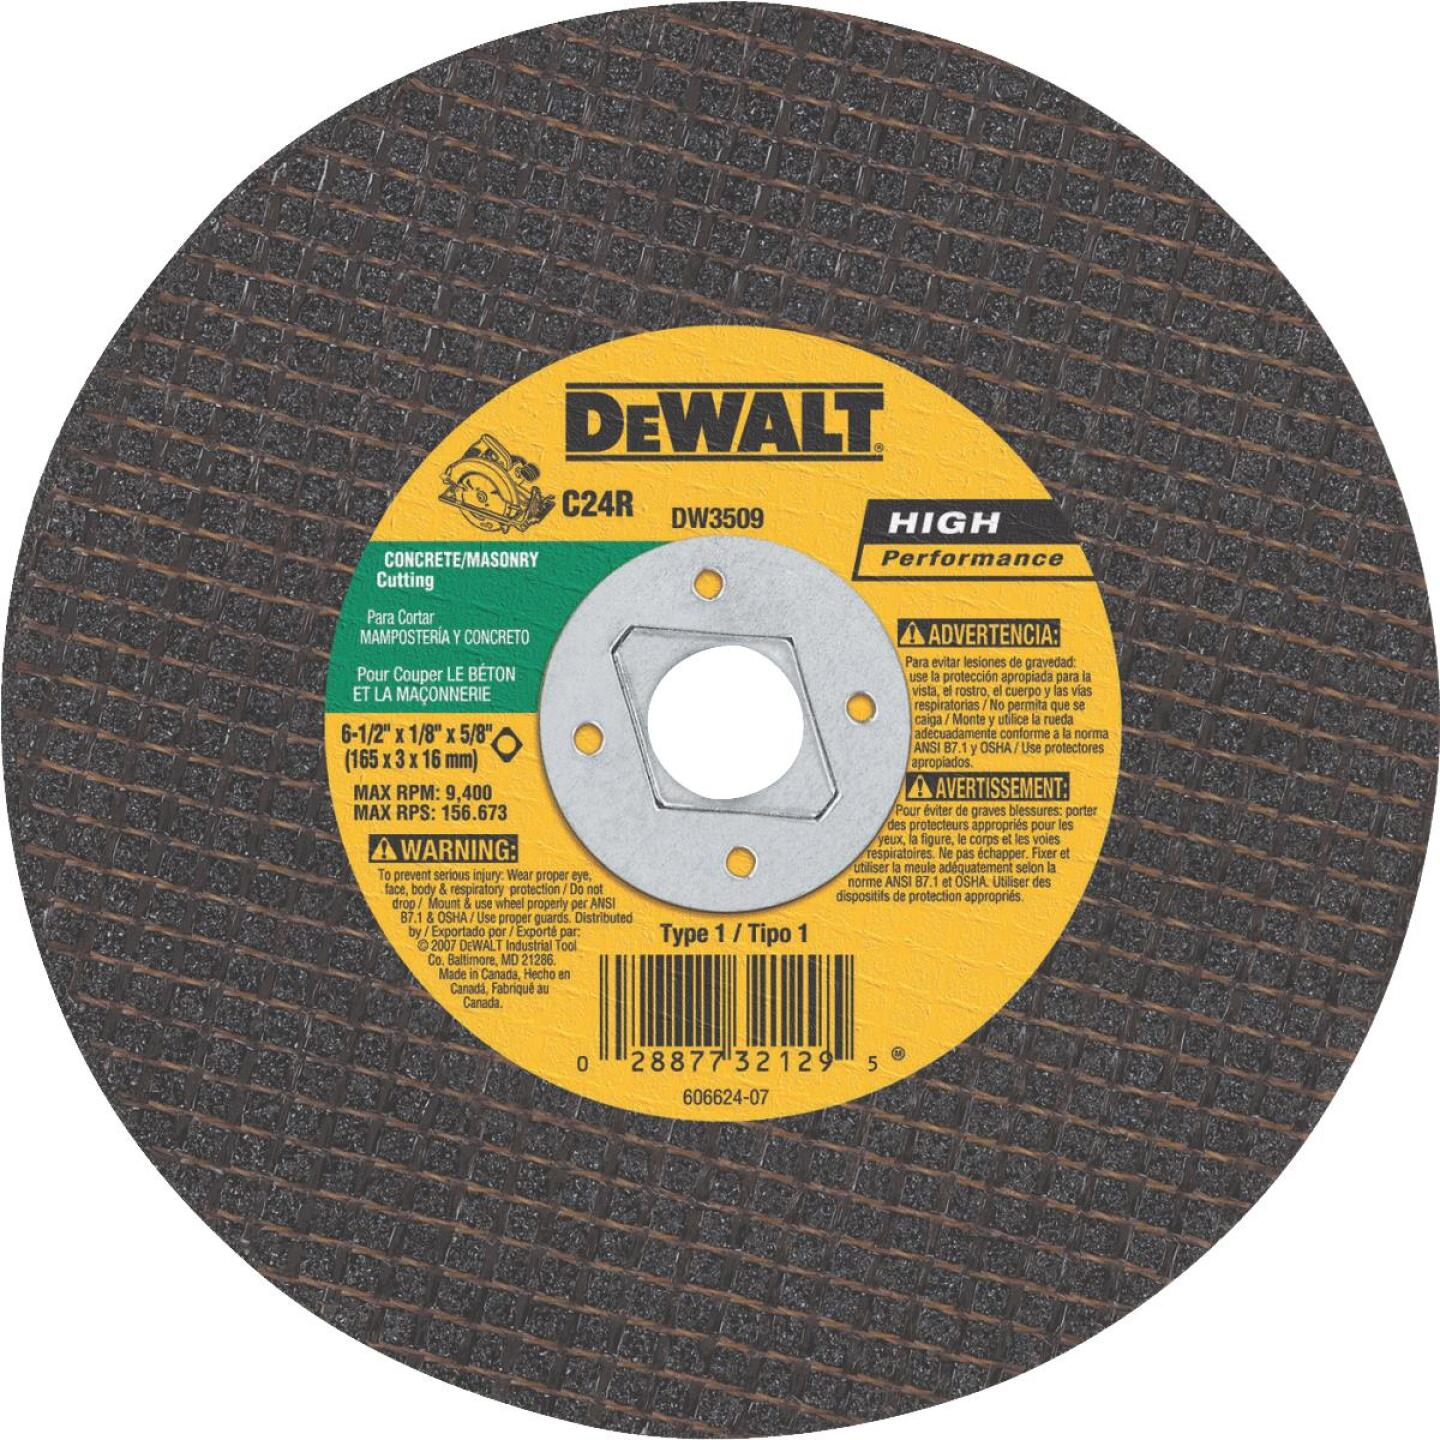 DeWalt HP Type 1 6-1/2 In. x 1/8 In. x 5/8 In. Masonry Cut-Off Wheel Image 1